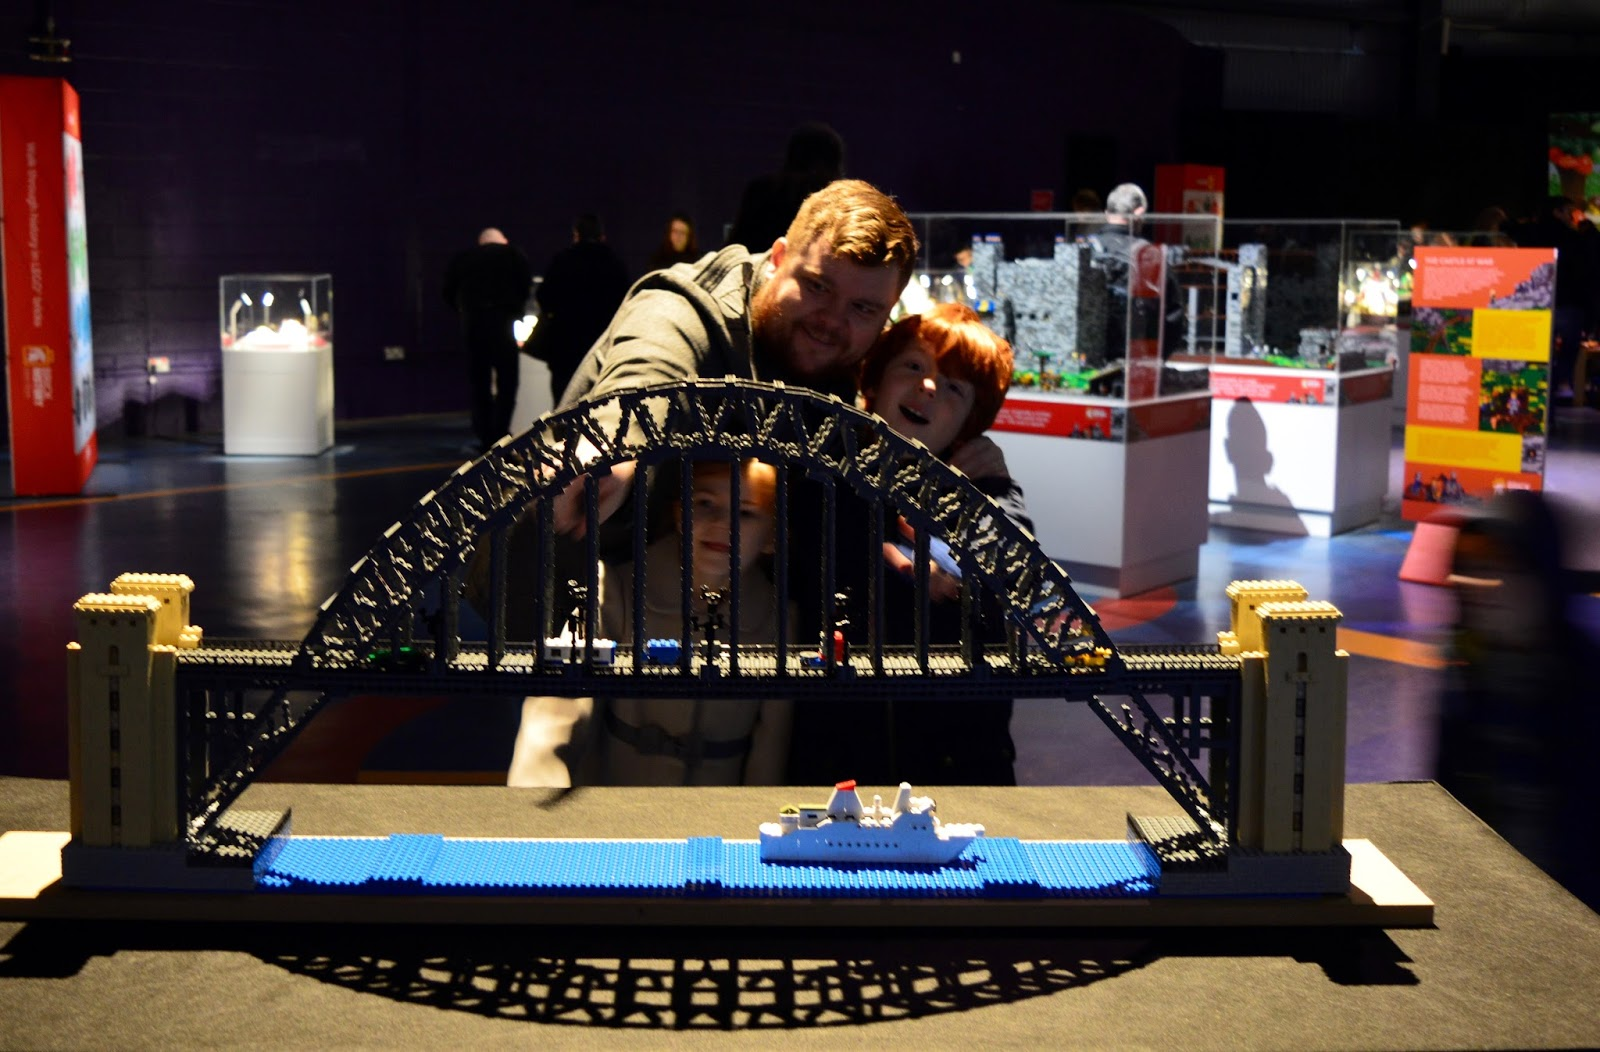 Brick History & North East Landmarks | New Lego Exhibitions at Life Science Centre, Newcastle | A Review - A Lego Tyne Bridge